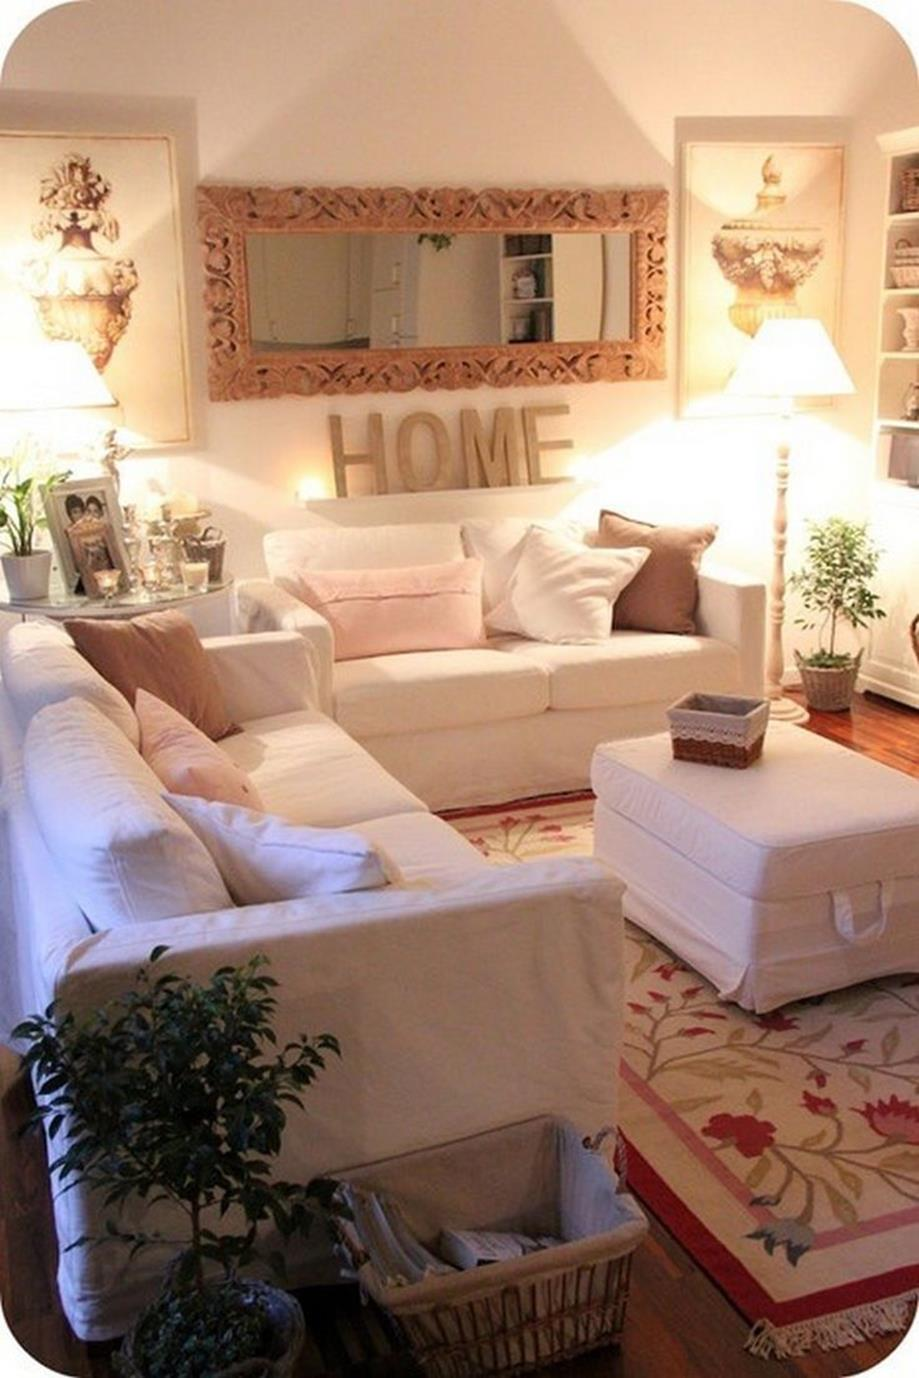 Shabby Chic Living Room Decorating on A Budget 14